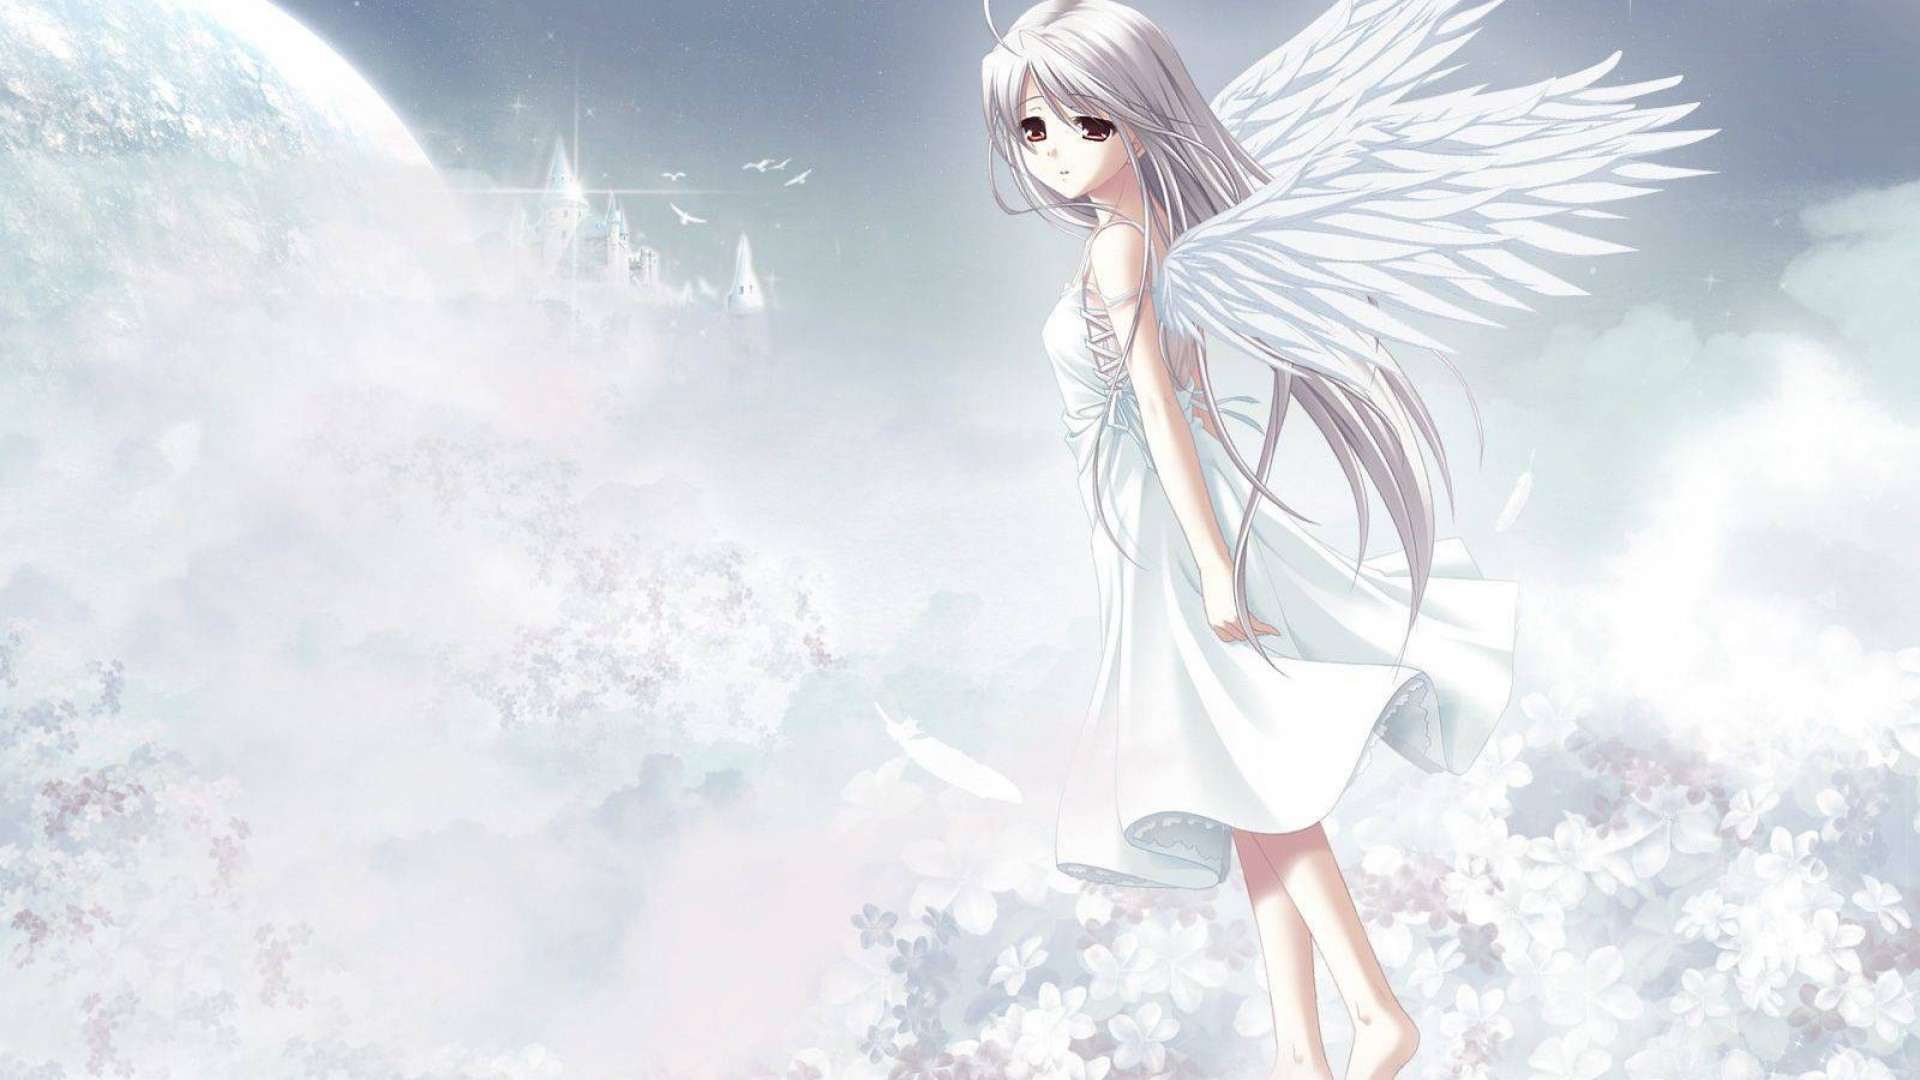 1920x1080 Explore and share Cute Anime Girl Wallpaper on WallpaperSafari